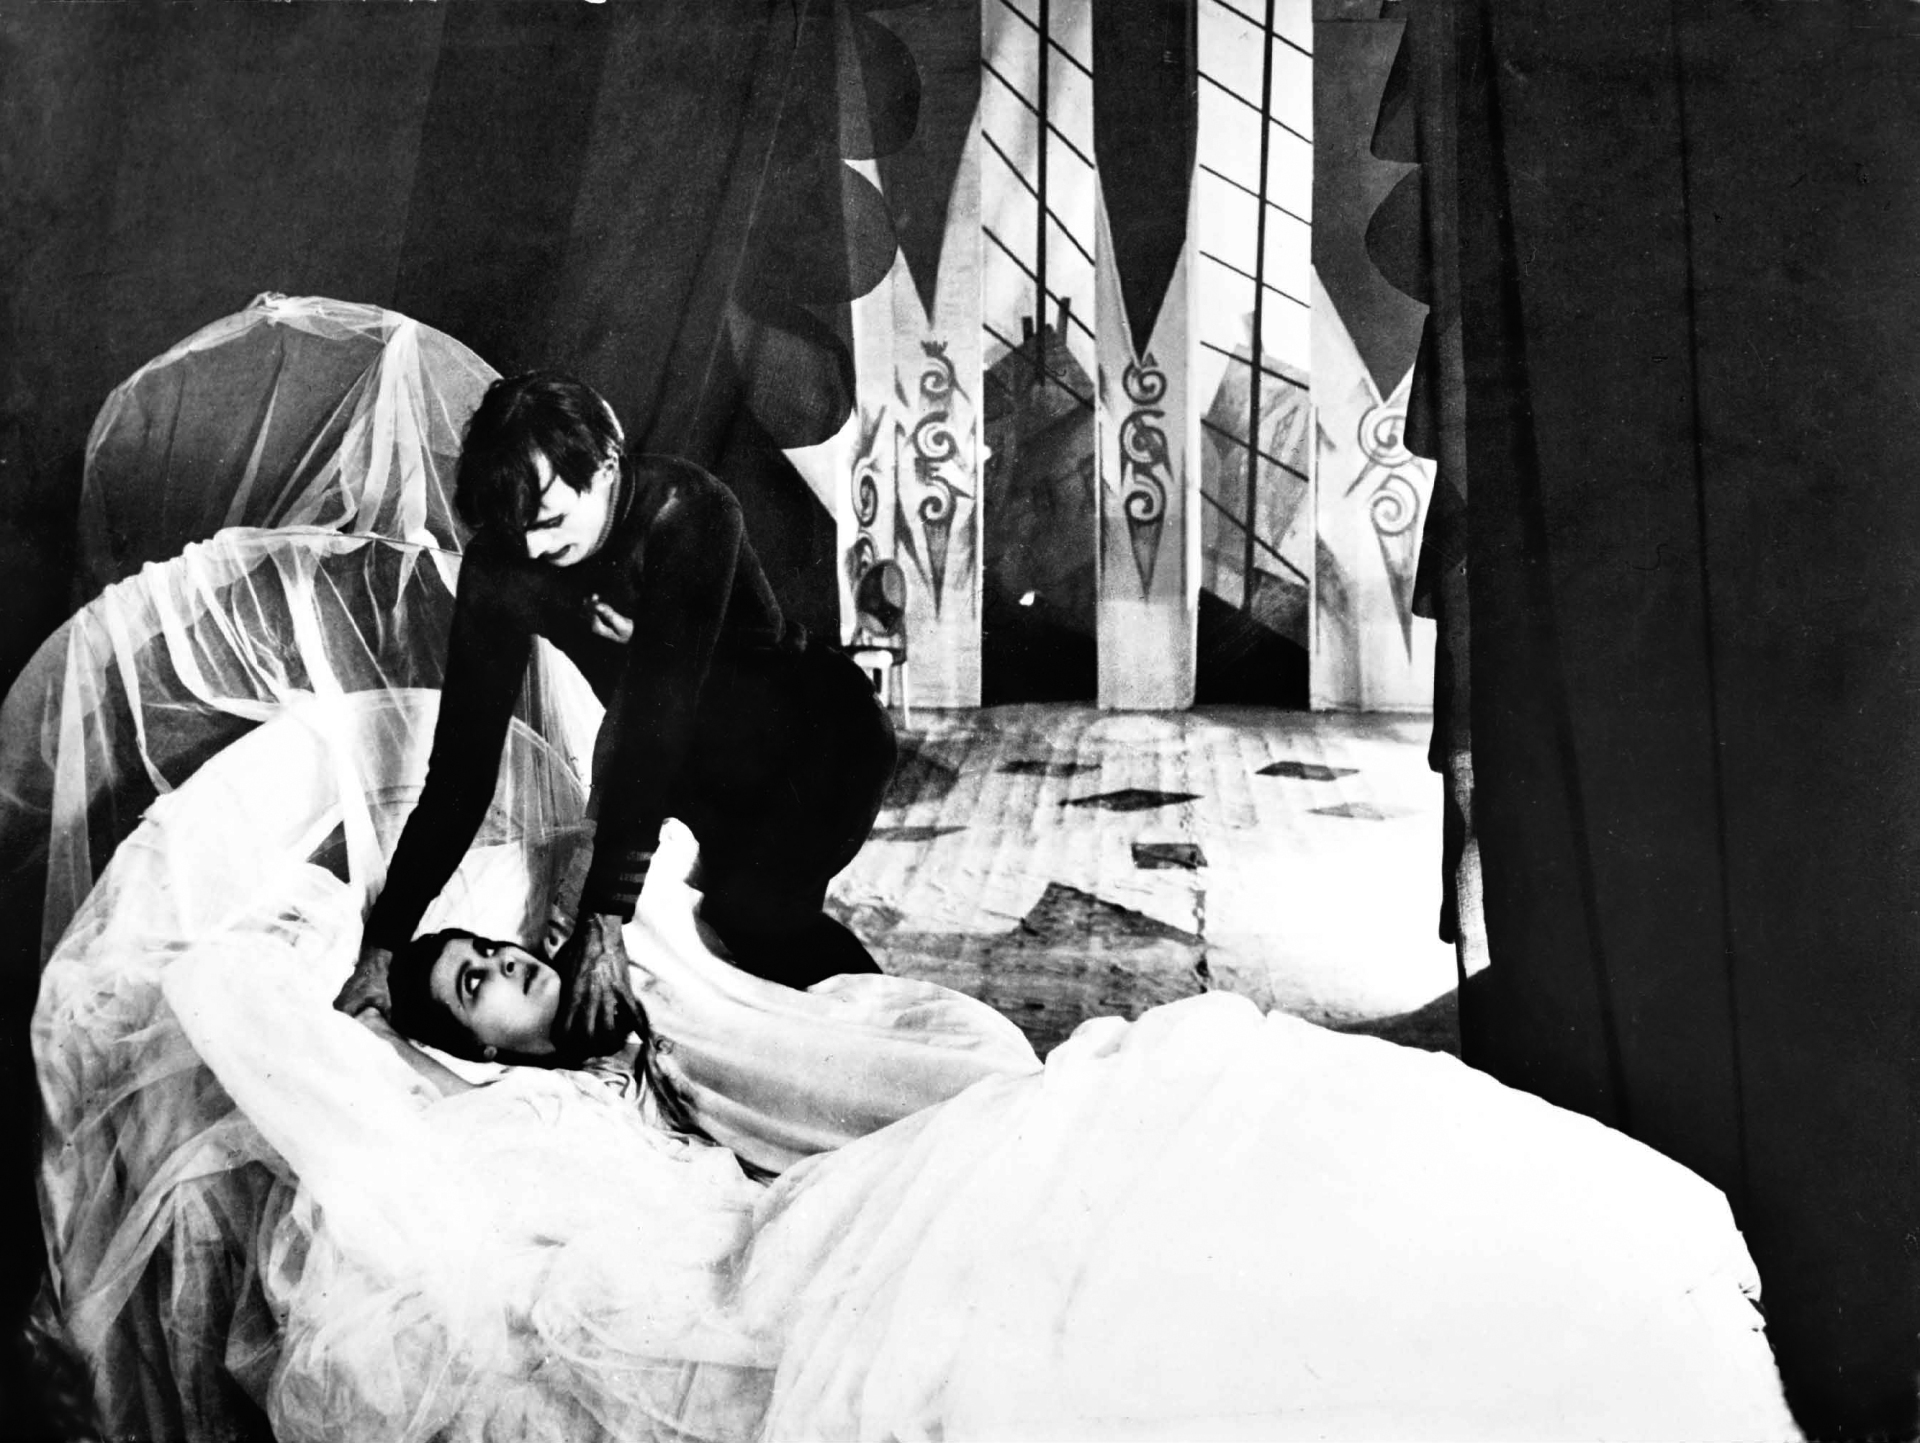 175. The Cabinet of Dr. Caligari (1920)